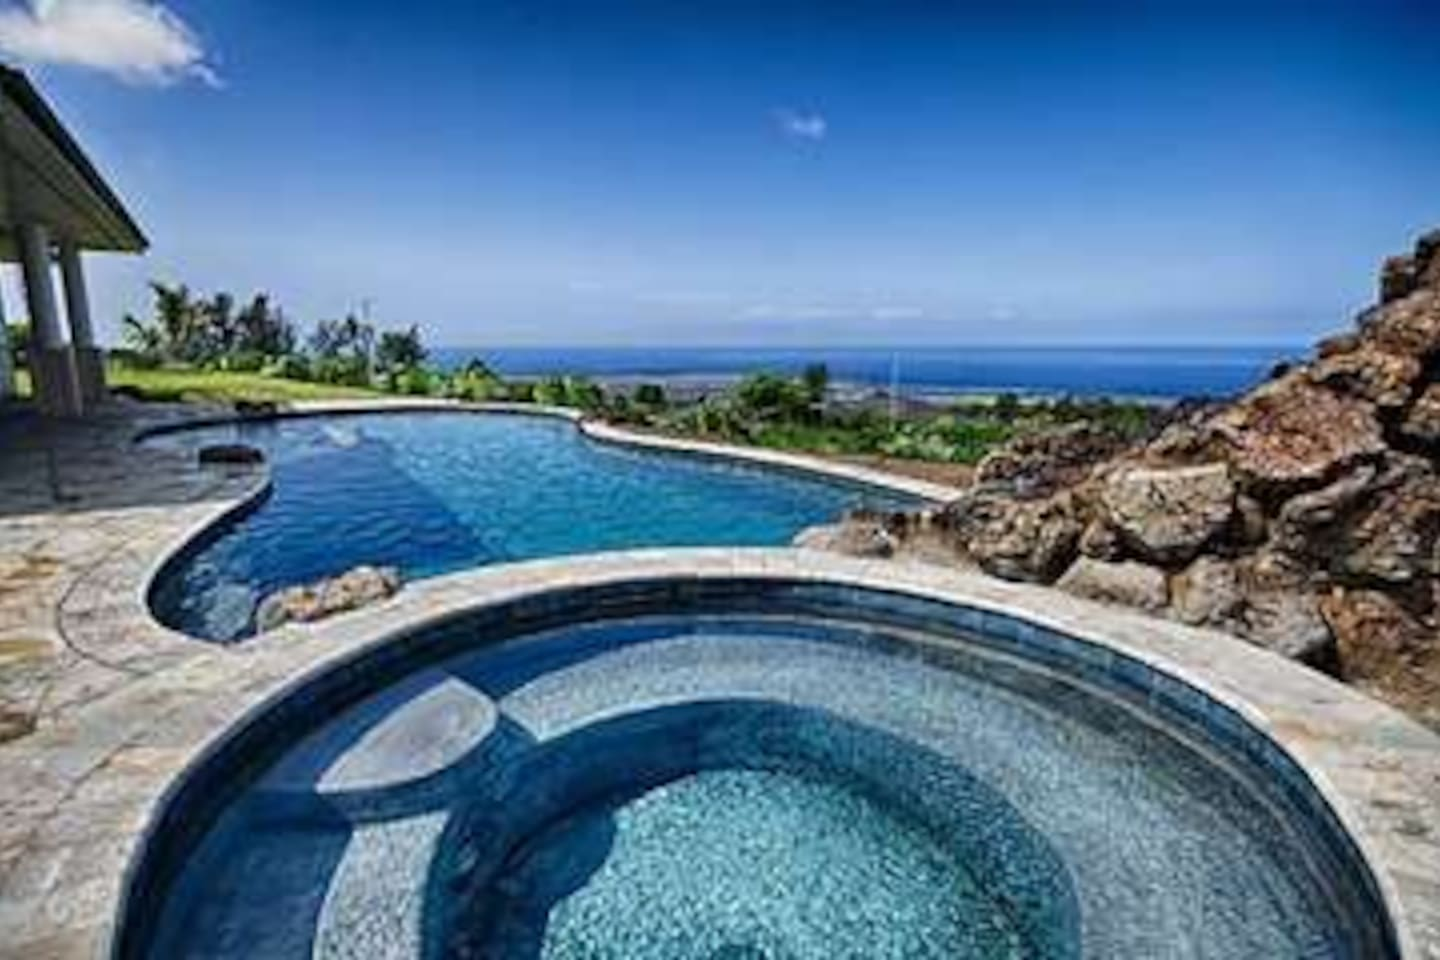 Pool, Hot Tub and Ocean Views....What more do you need?